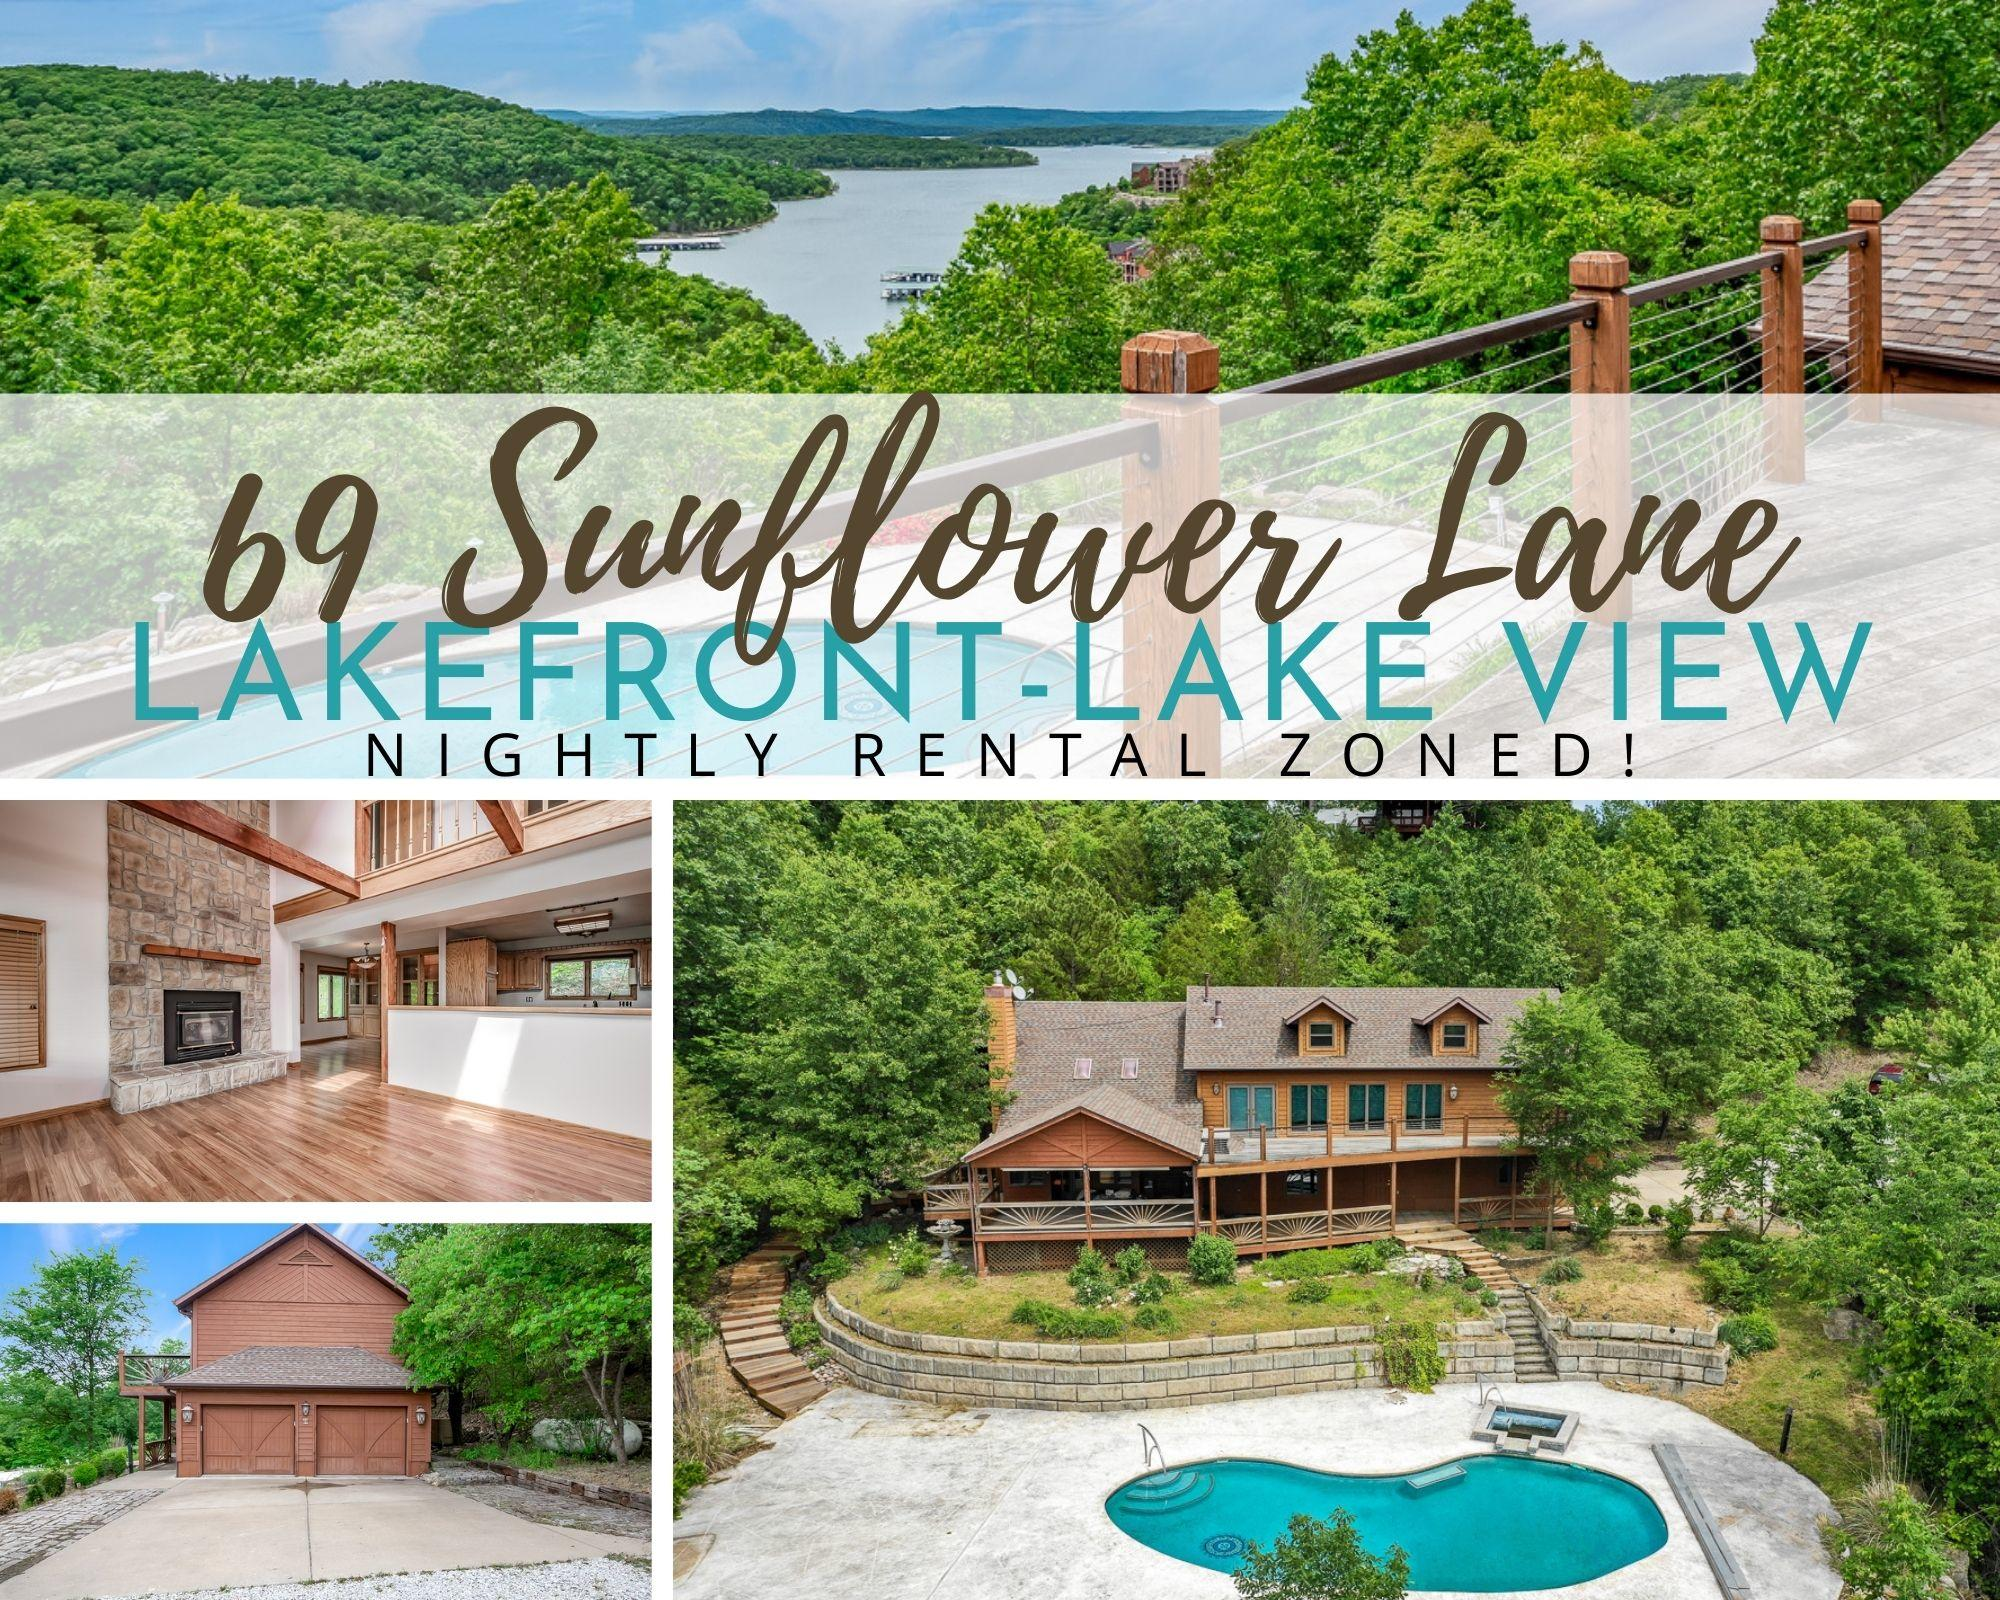 69 Sunflower Lane Lampe, MO 65681